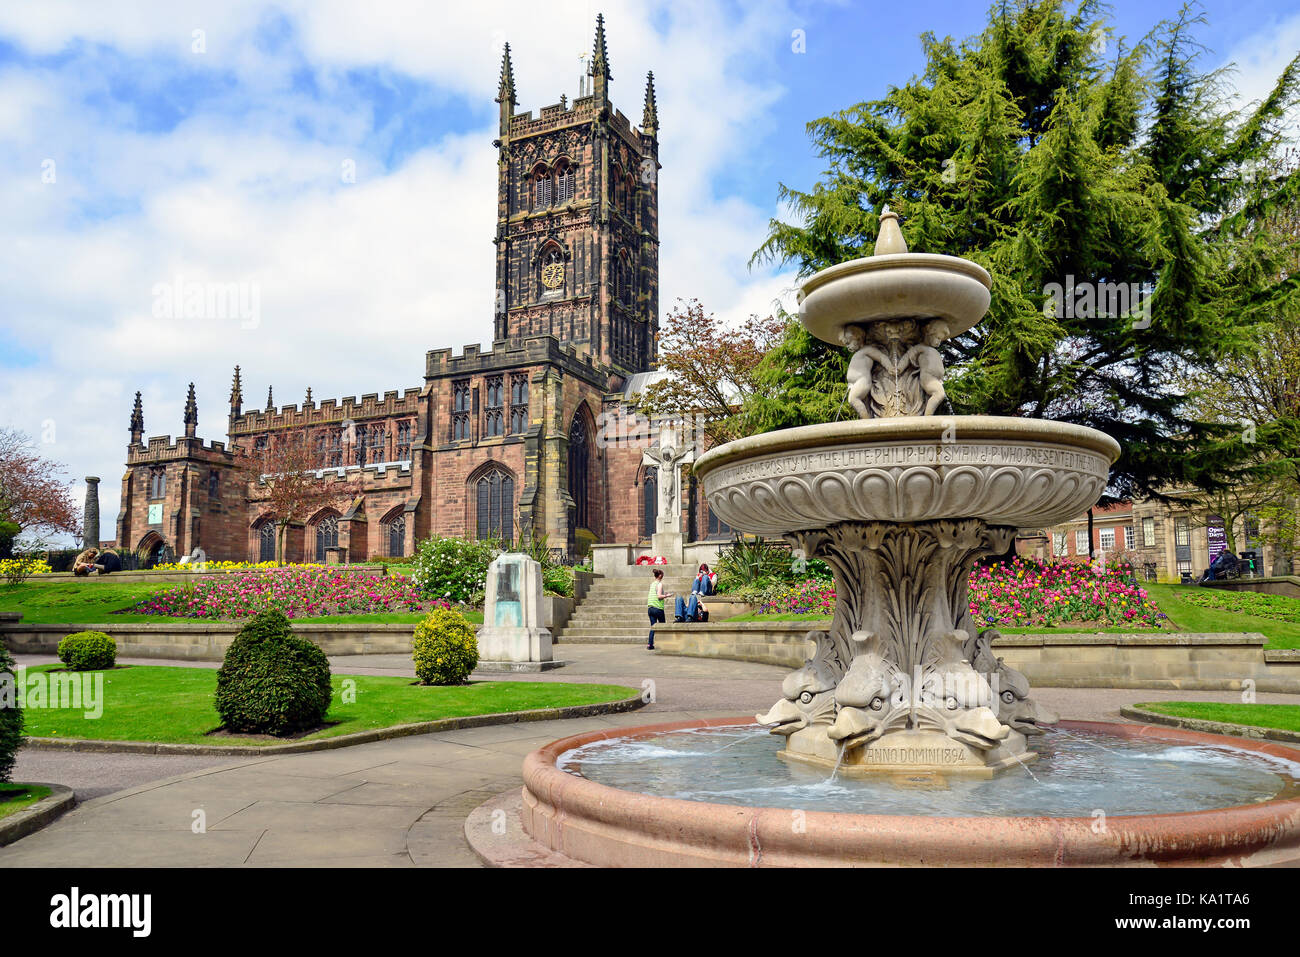 St Peter's Collegiate Church and gardens, Wolverhampton, West Midlands, England, United Kingdom - Stock Image